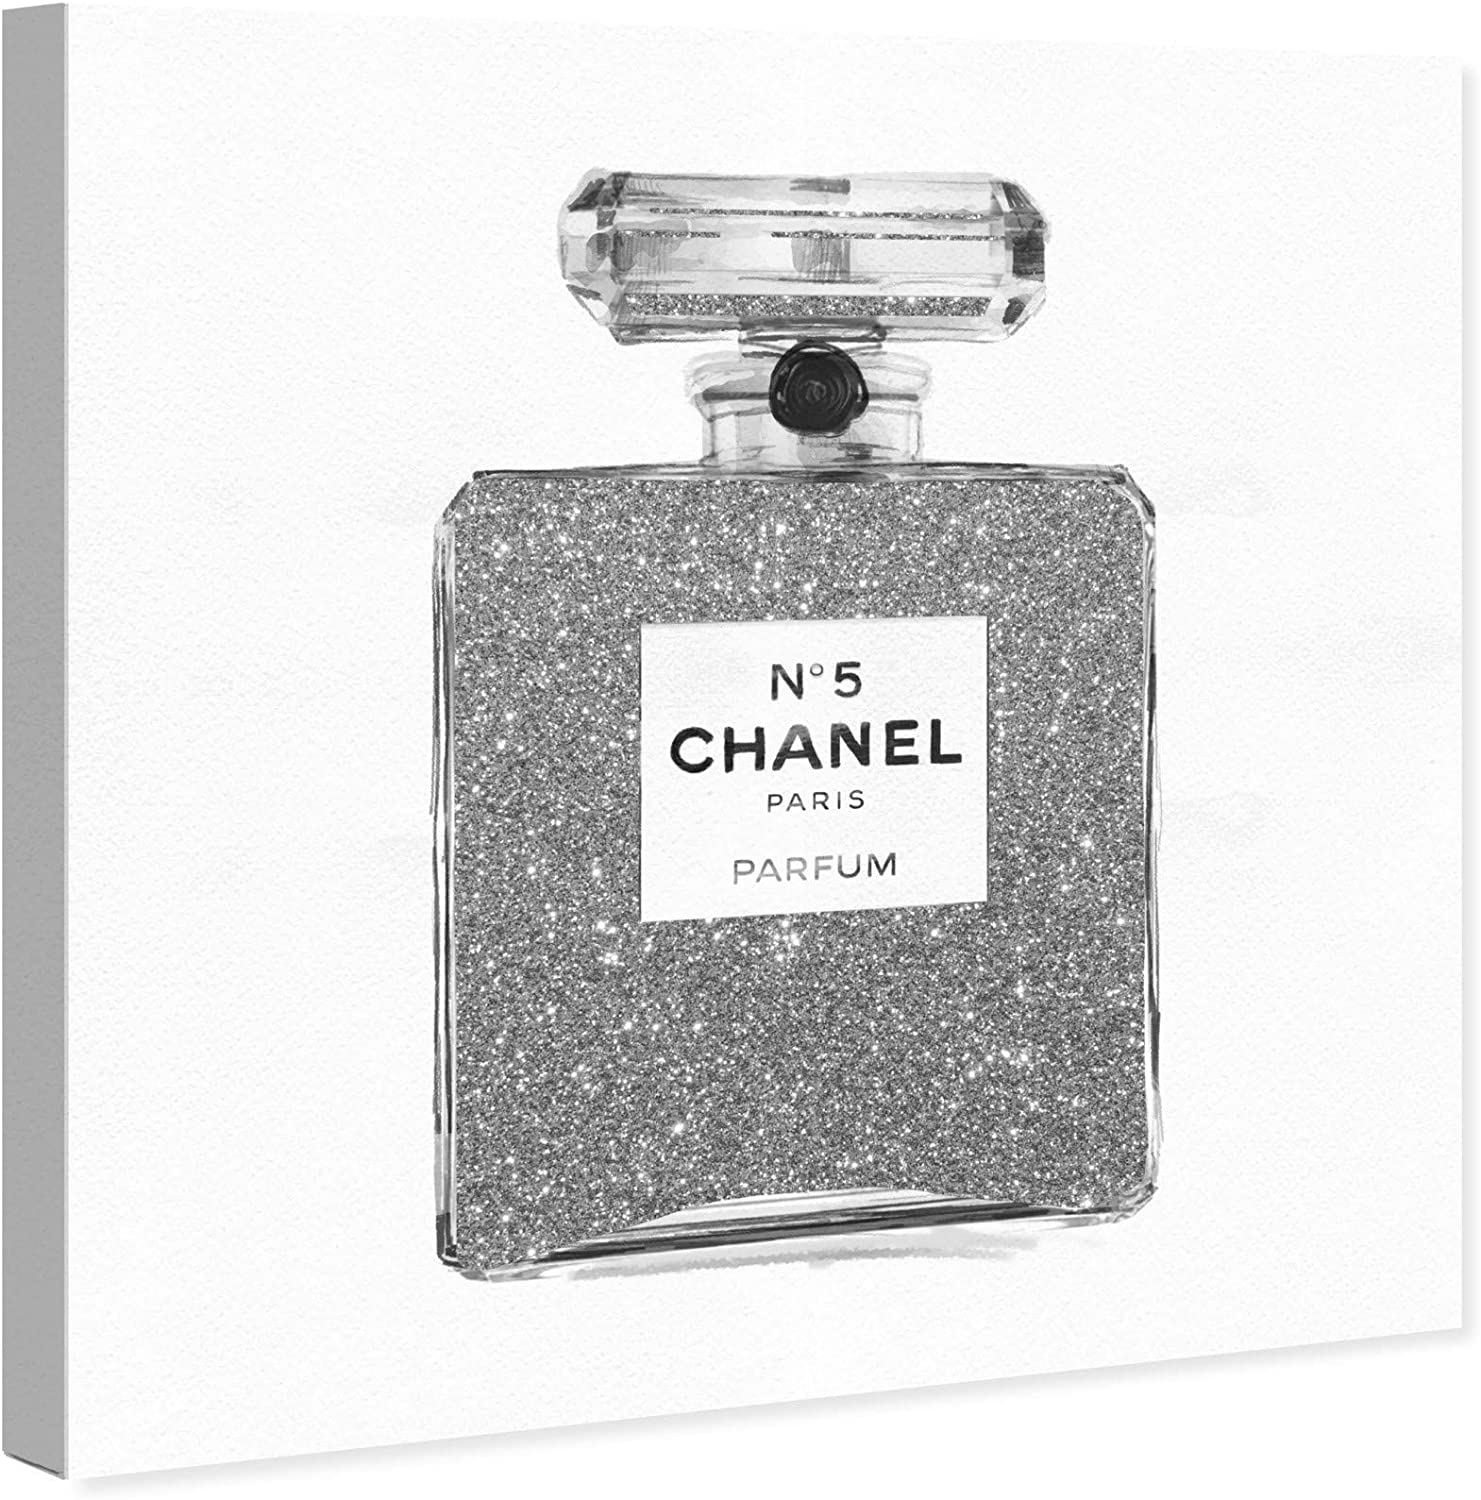 Amazon Com The Oliver Gal Artist Co Fashion And Glam Wall Art Canvas Prints Silver Classic Number 5 Perfumes Home Décor 30 X 30 Gray White Home Kitchen